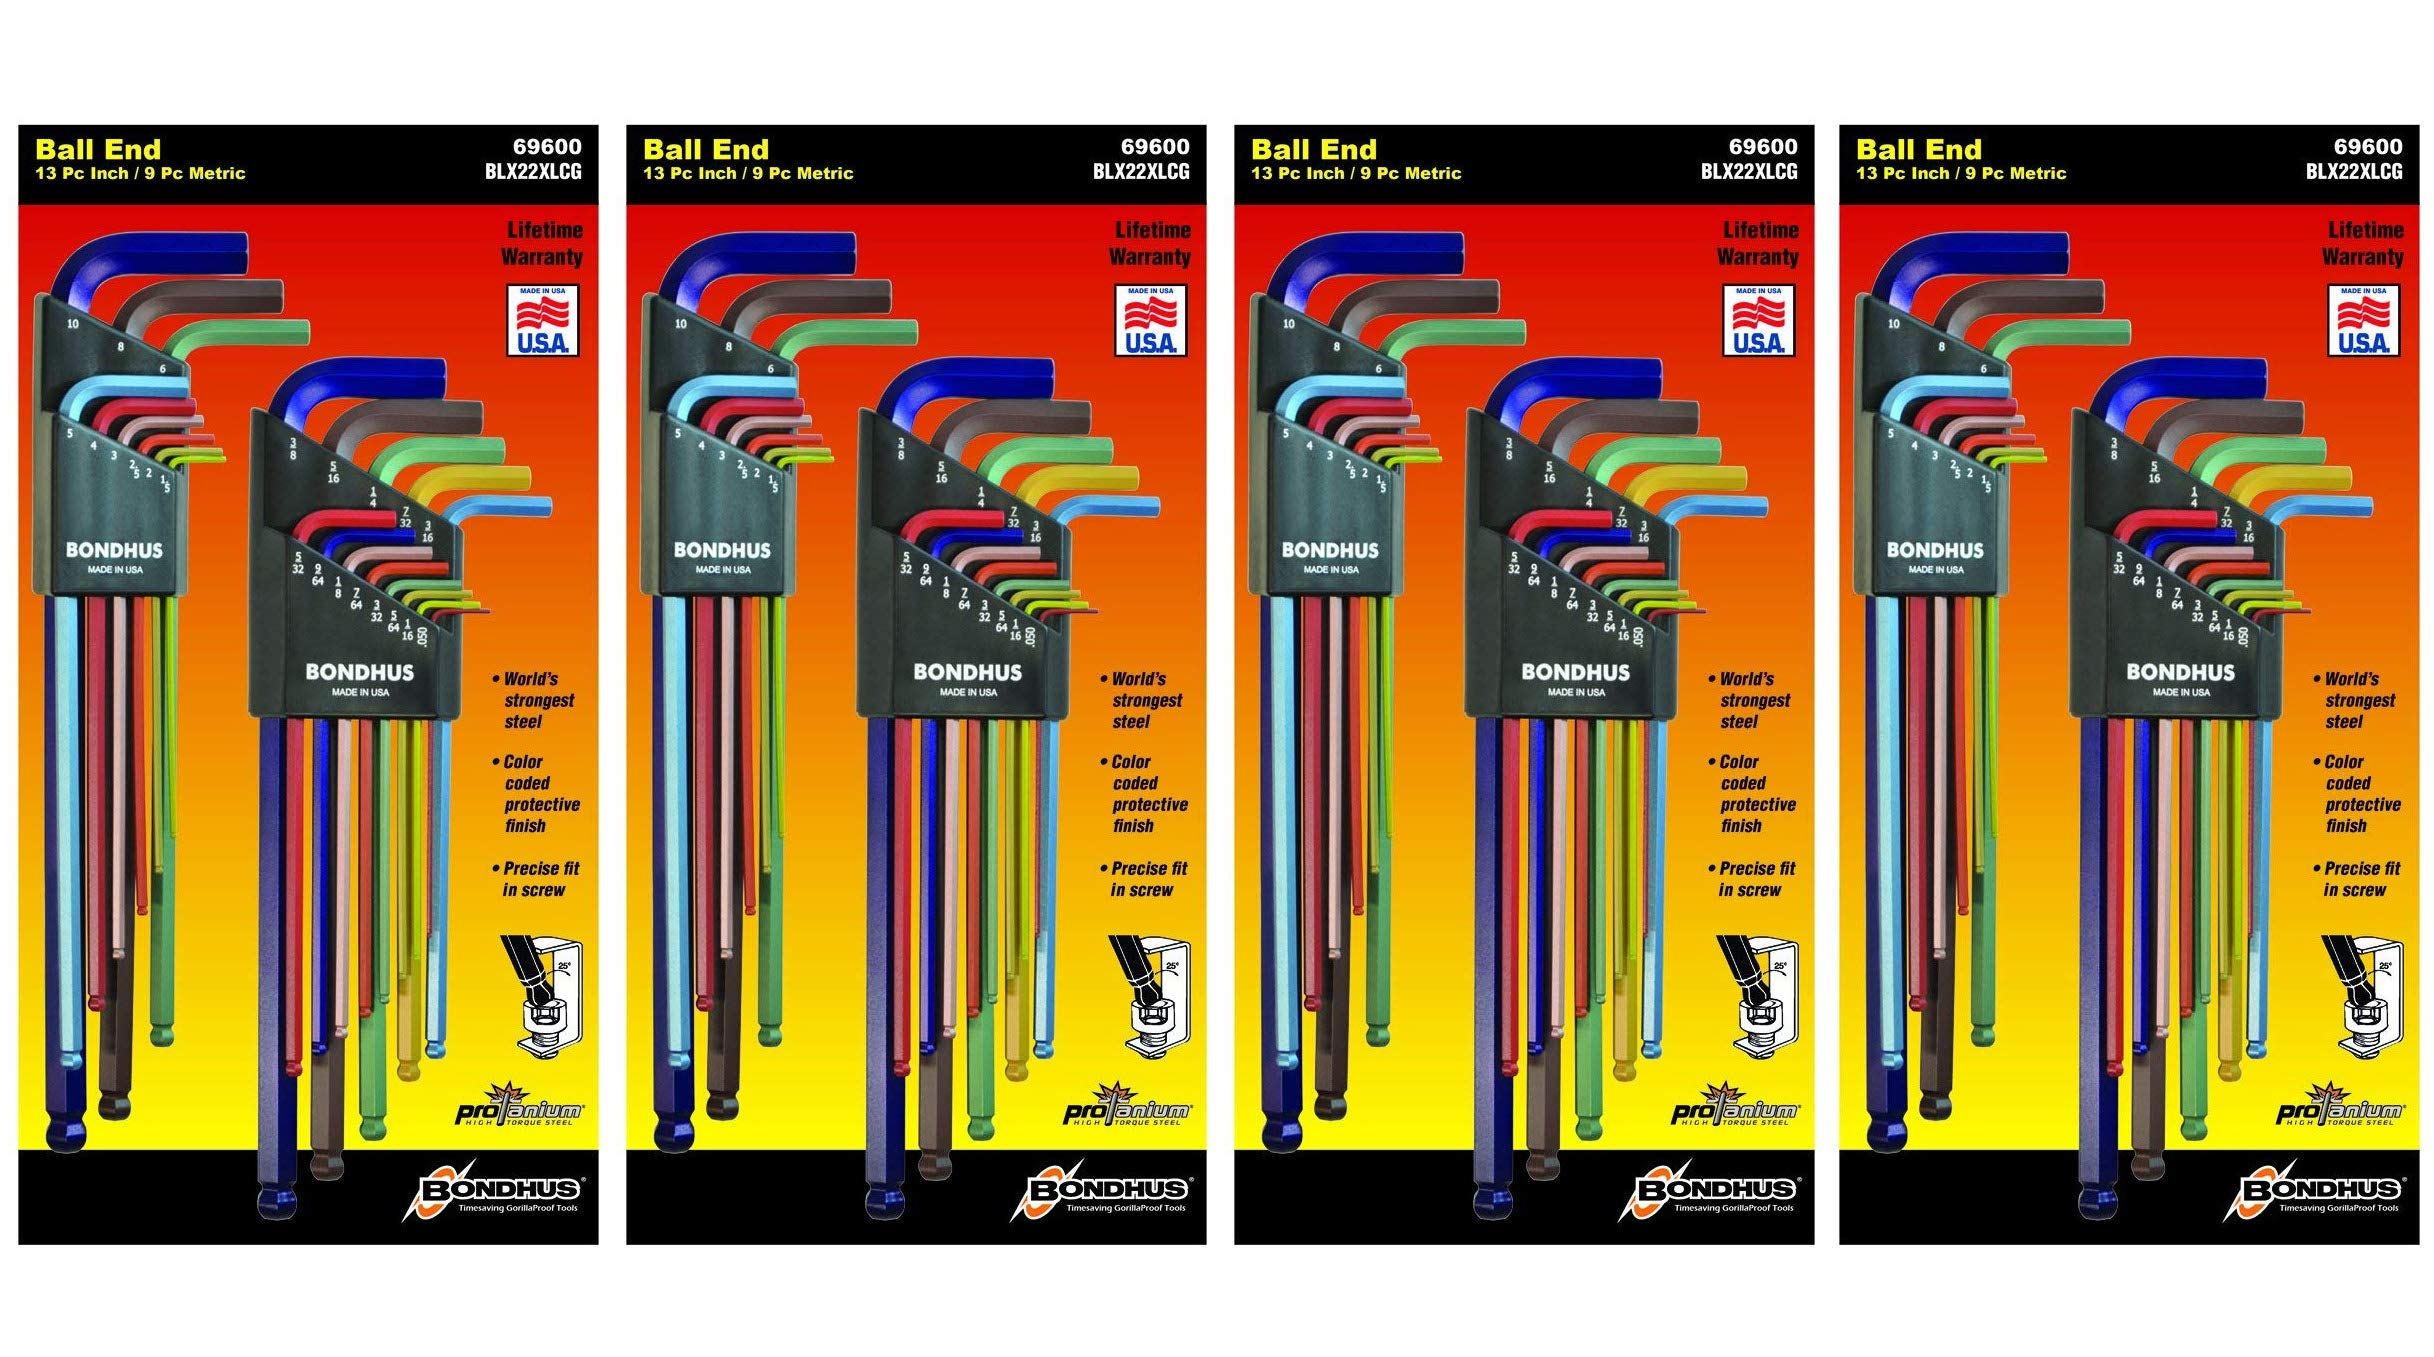 Bondhus 69600 Ball End Double Pack L-Wrench Set with ColorGuard, 13 Piece (4-(Pack))